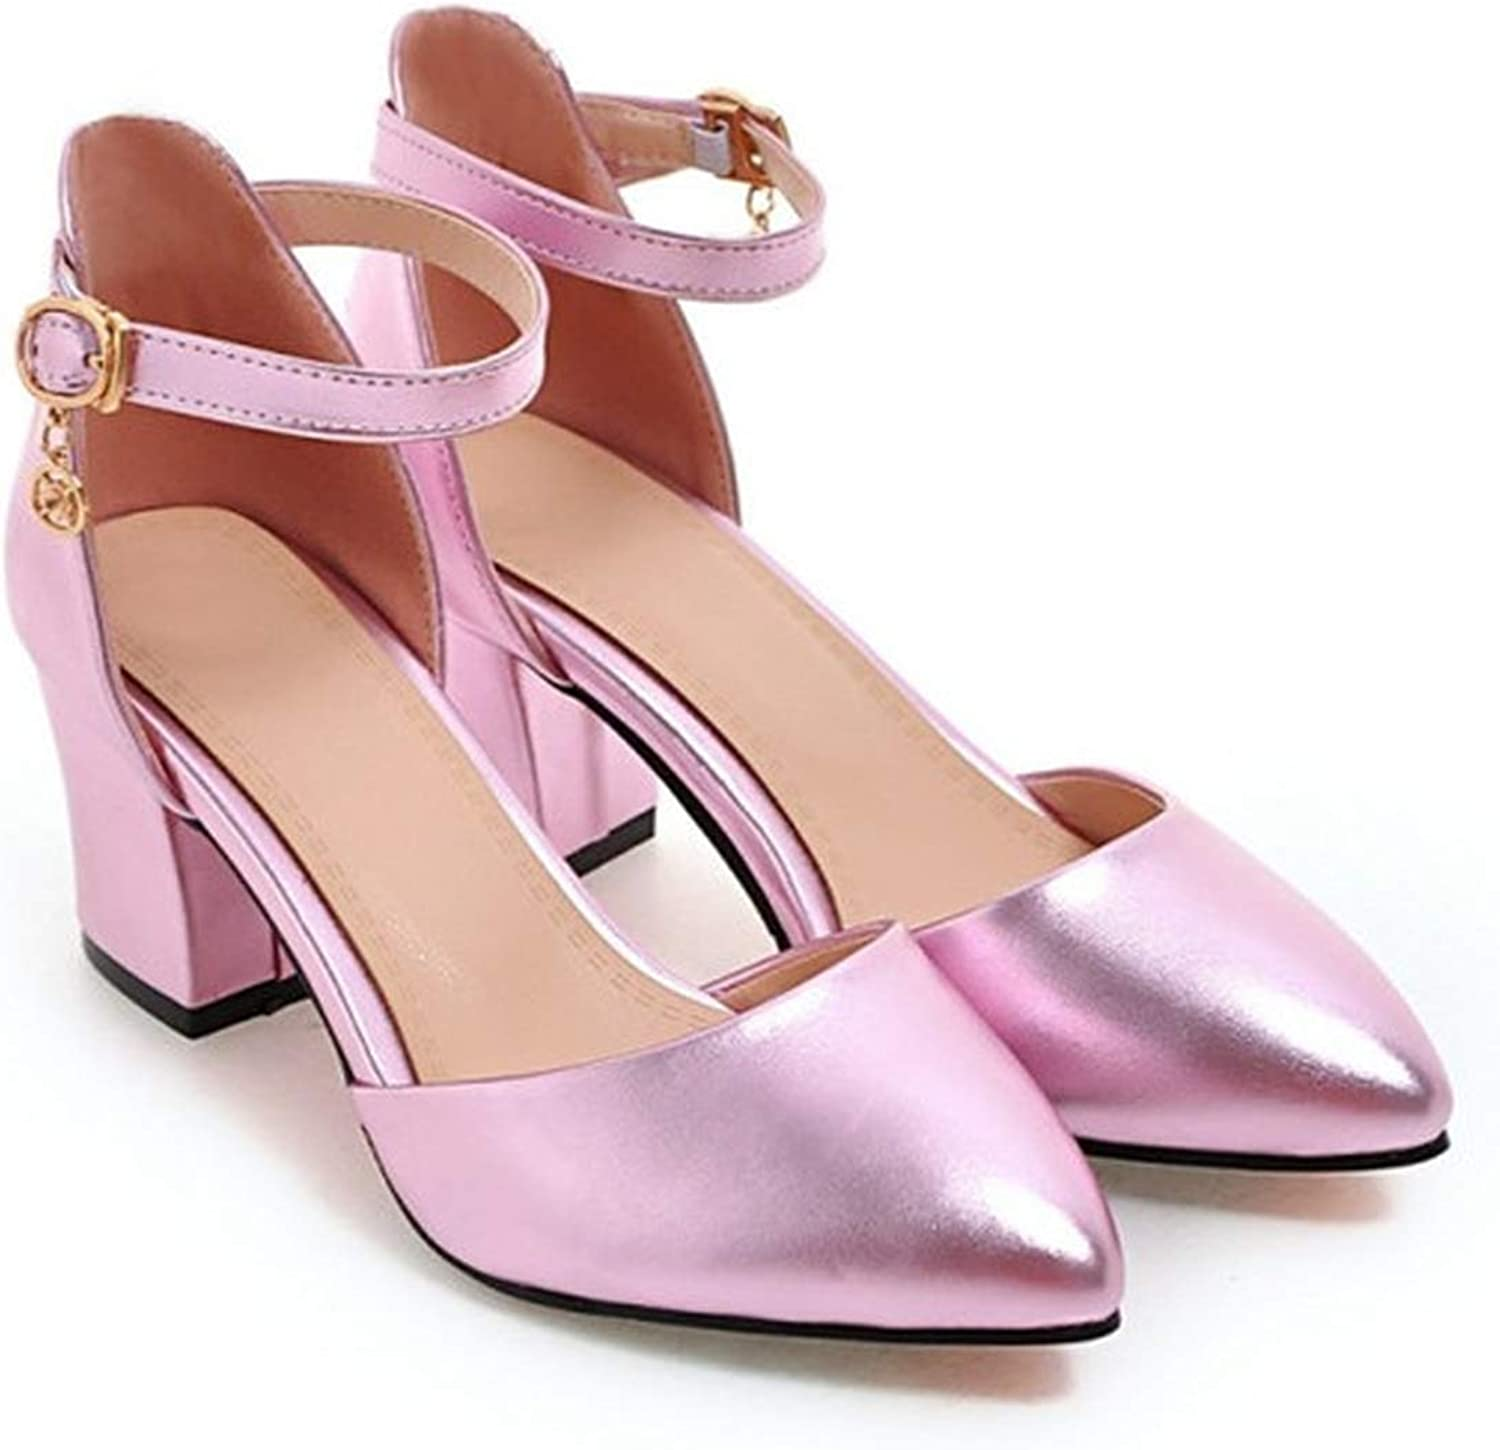 Thick High Heels shoes Pump Women Spring Ankle Strap Wedding shoes Silver Pointed Toe Two Piece Pumps Big Size